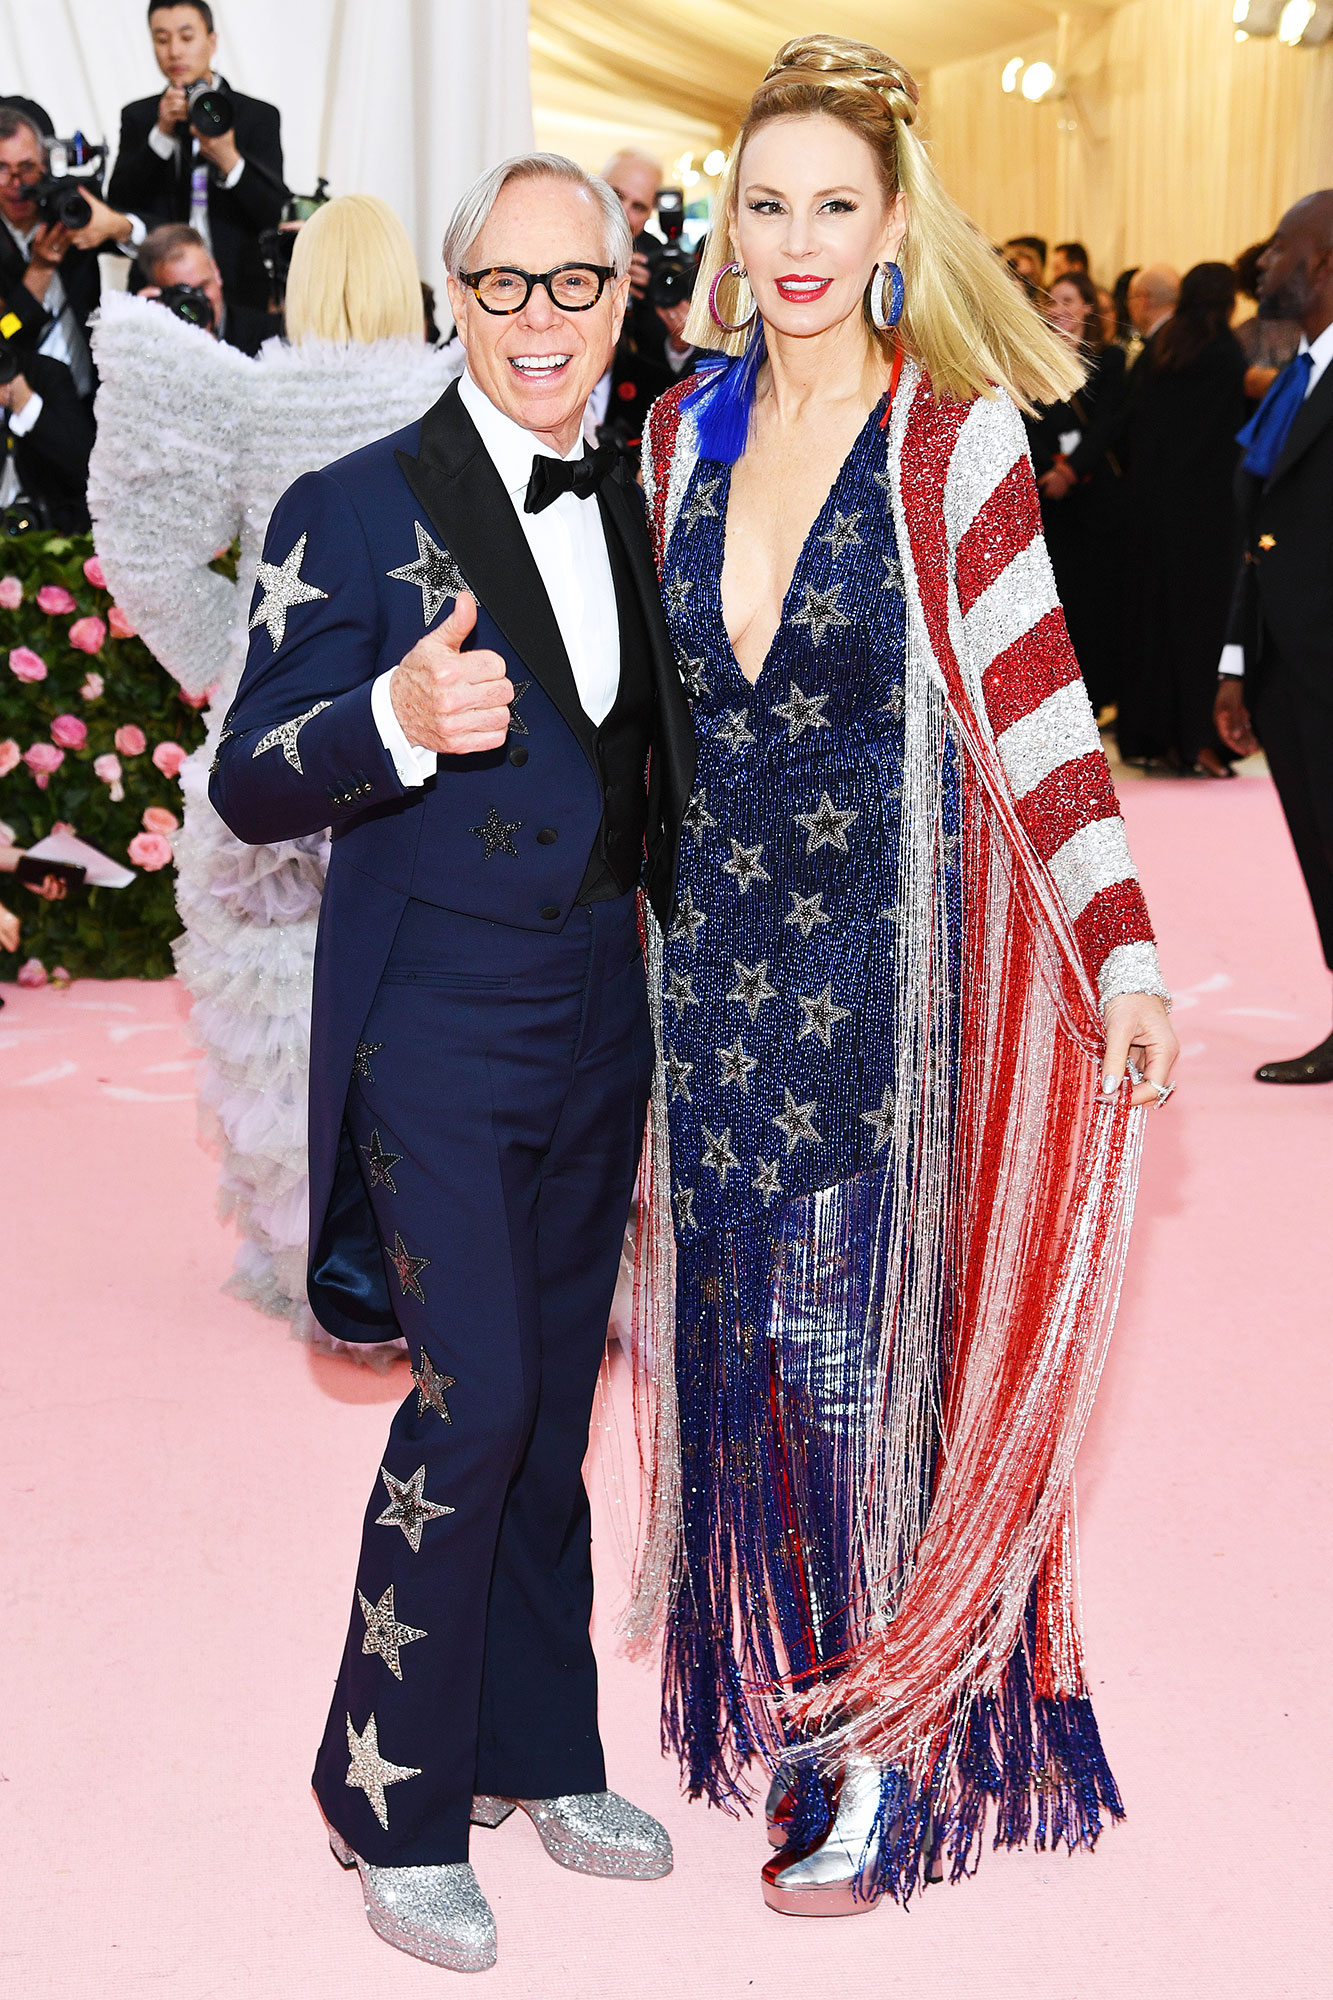 Tommy Hilfiger and Dee Hilfiger met gala 2019 - Wearing Americana-inspired Tommy Hilfiger designs.